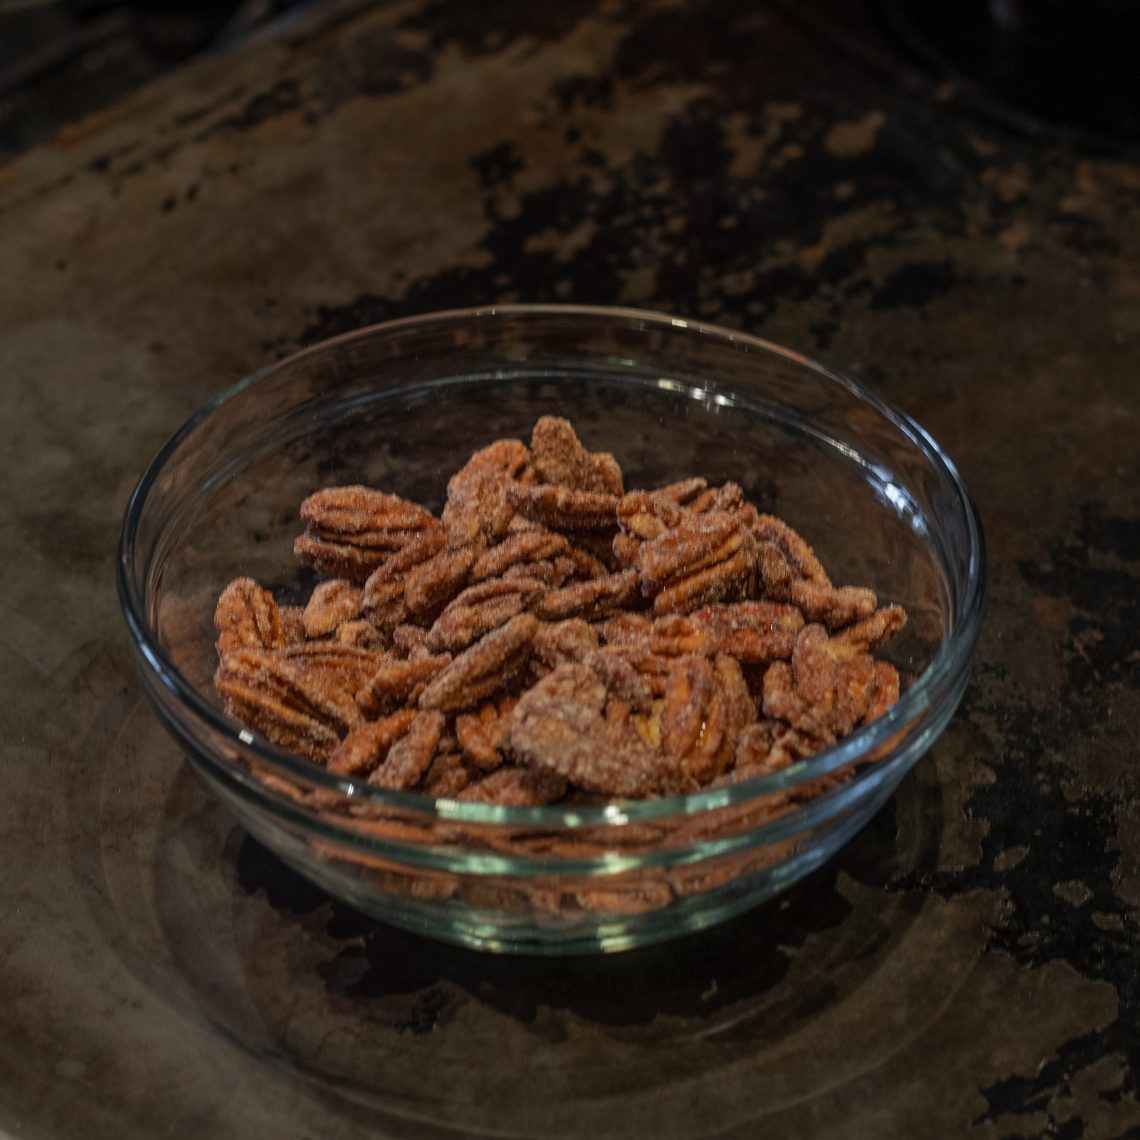 You are looking a toasted pecans with real maple syrup. Made with my hand made syrup with cinnamon and a bit of sea salt.